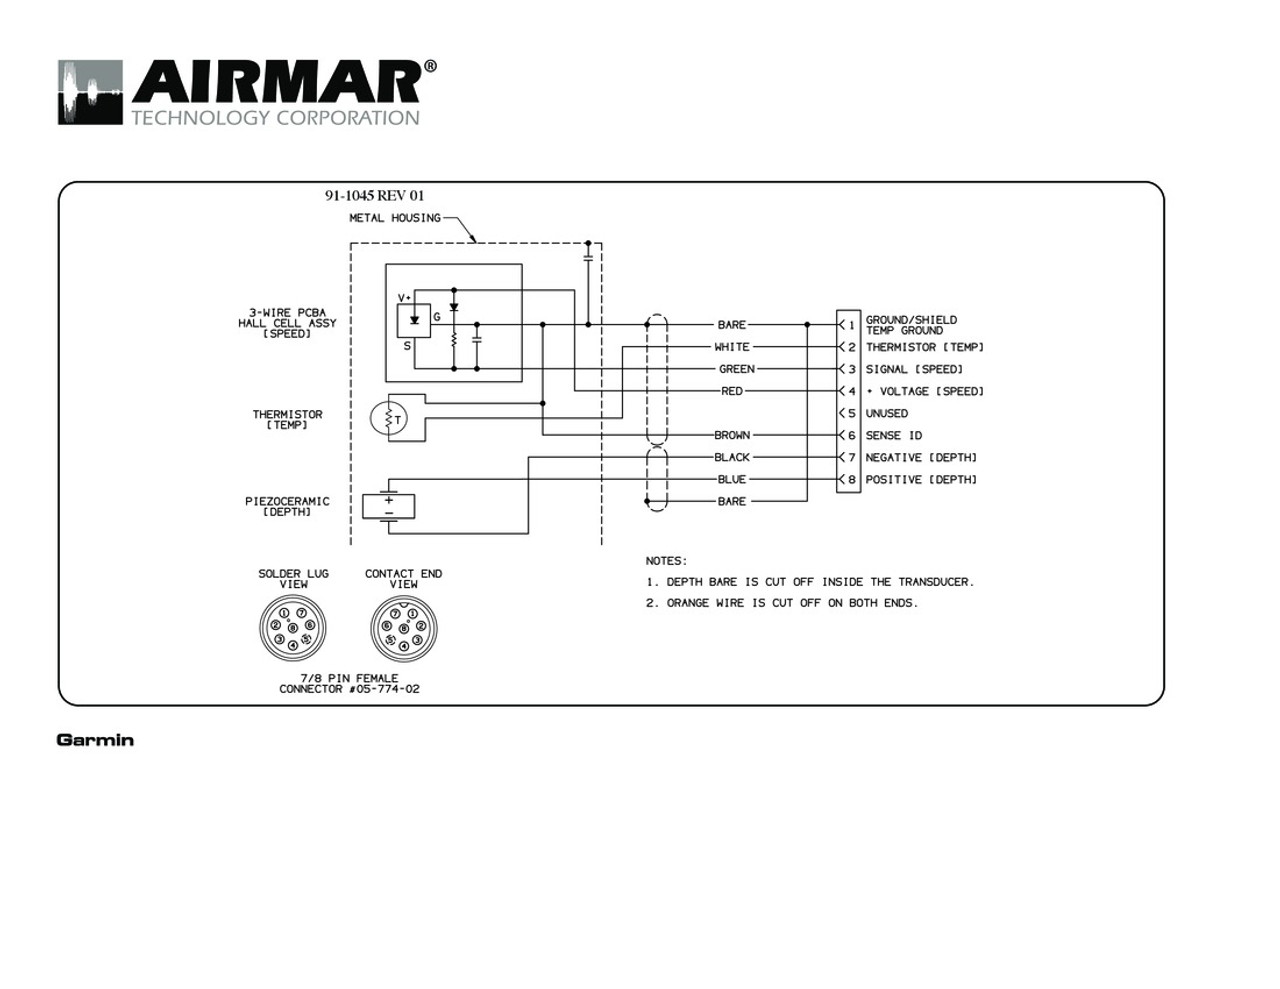 Wiring Diagram For Garmin 3205 - Wiring Diagrams Value on